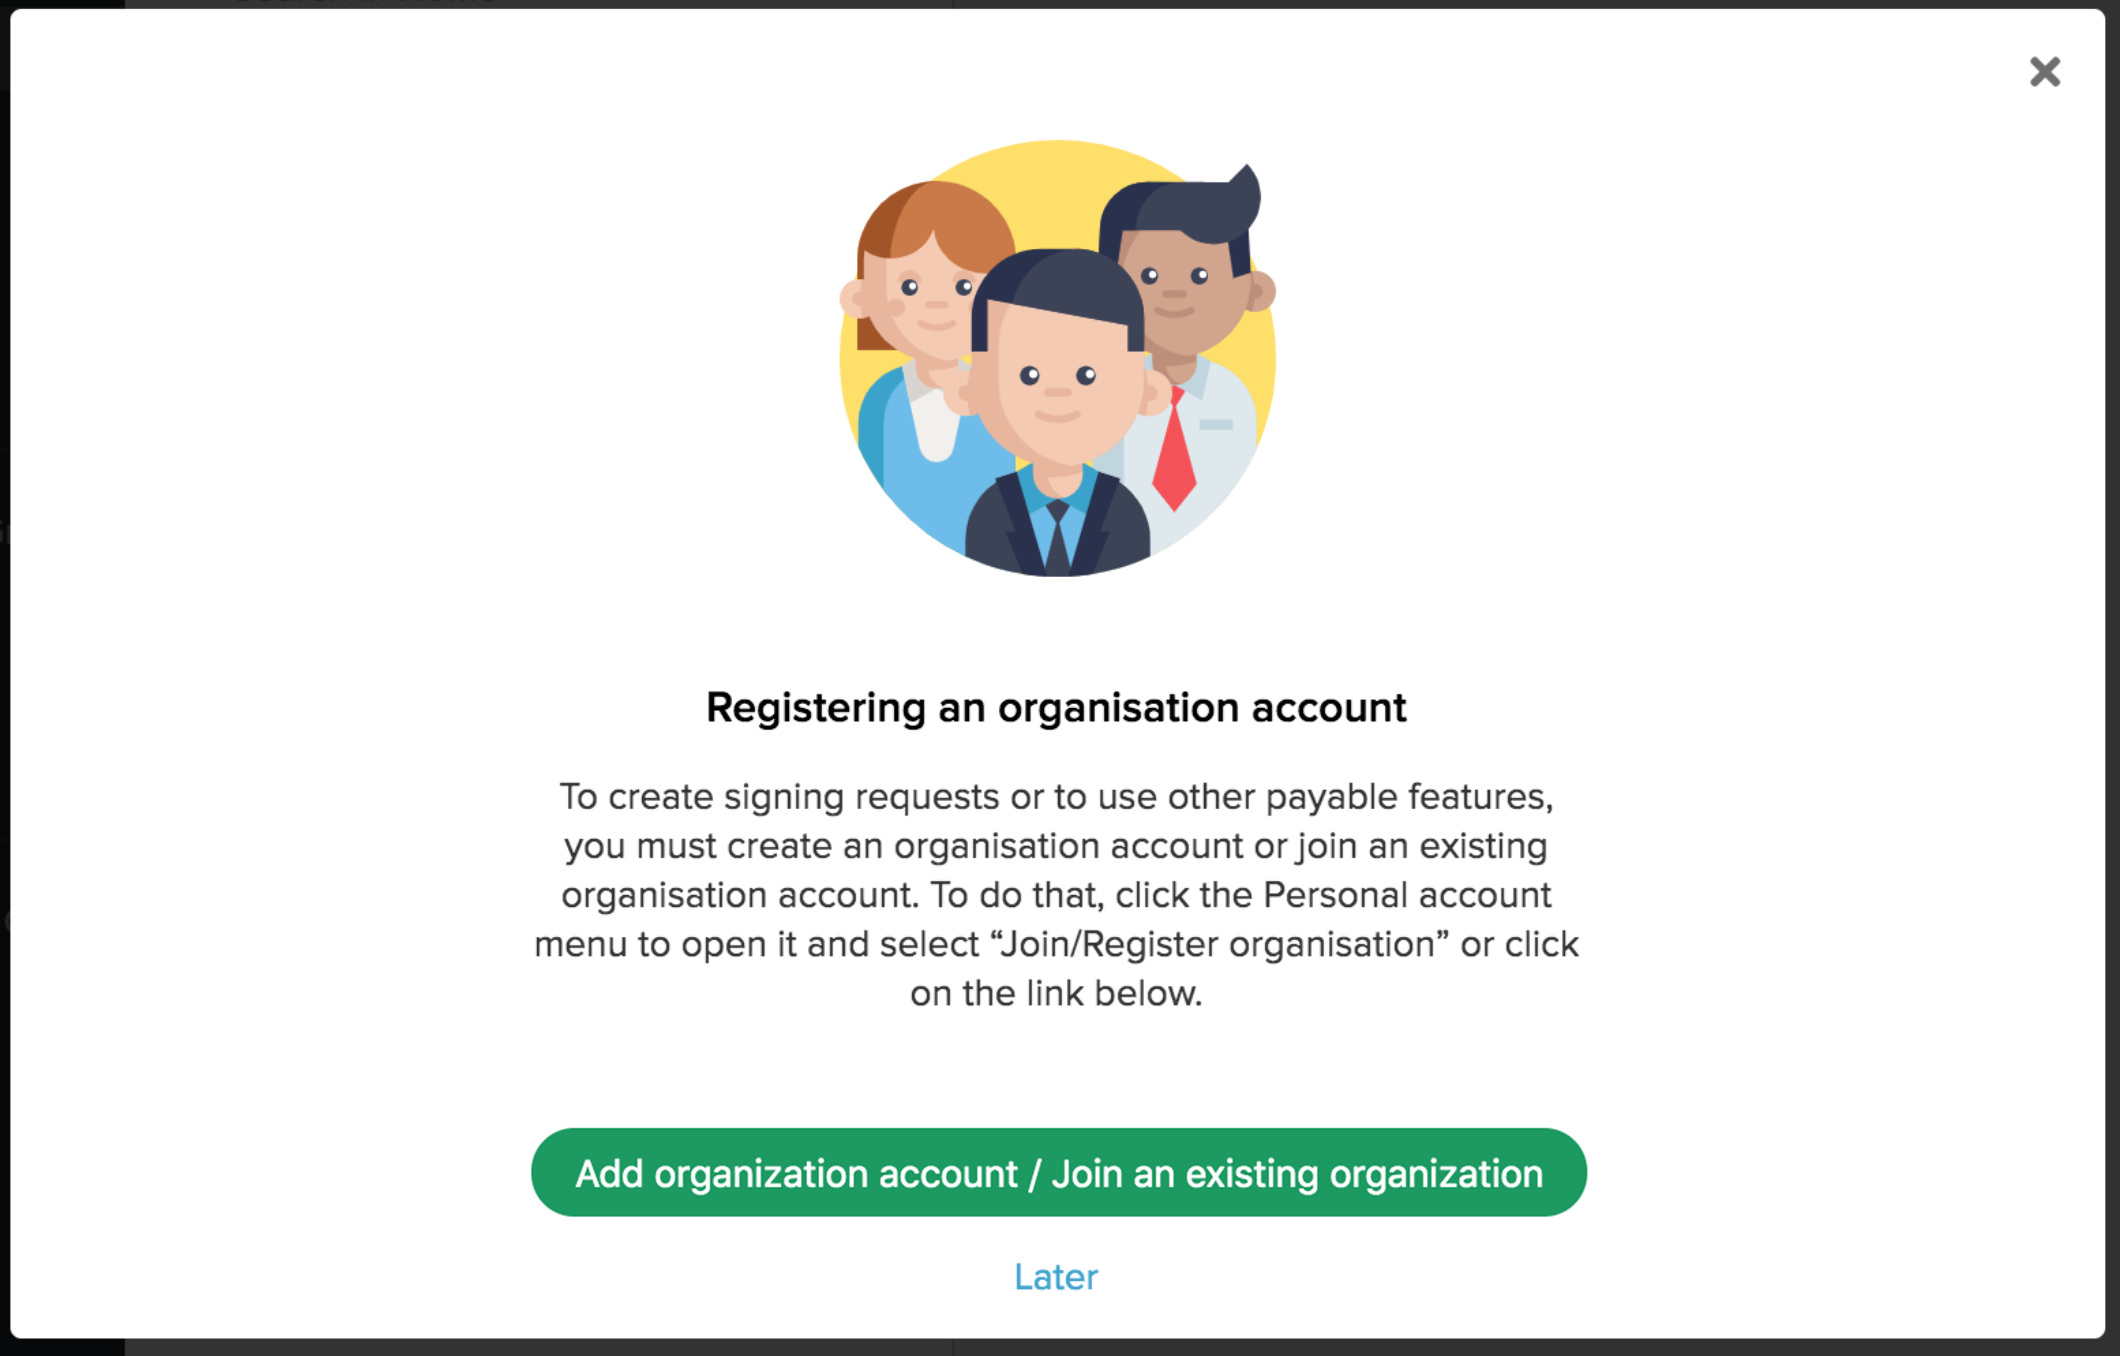 Mouseover on the organization icon